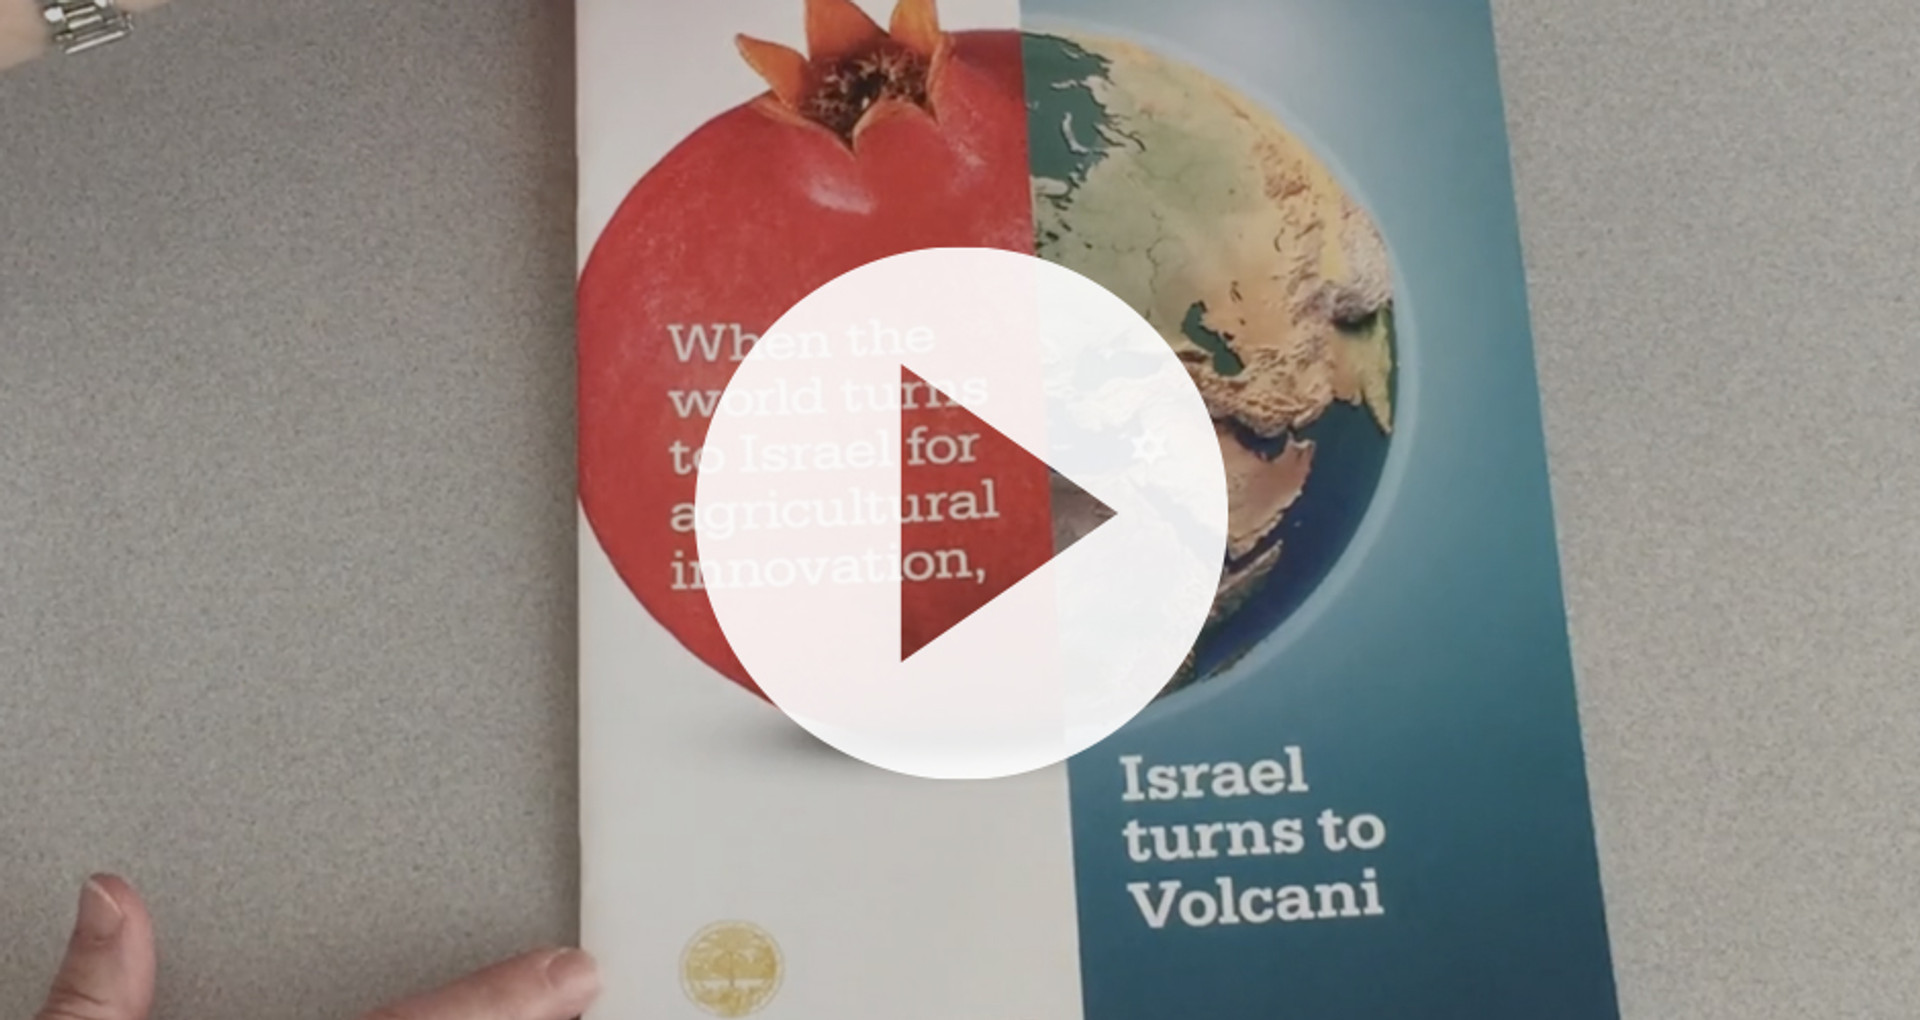 Volcani overview brochure (video with energetic music, no dialogue)